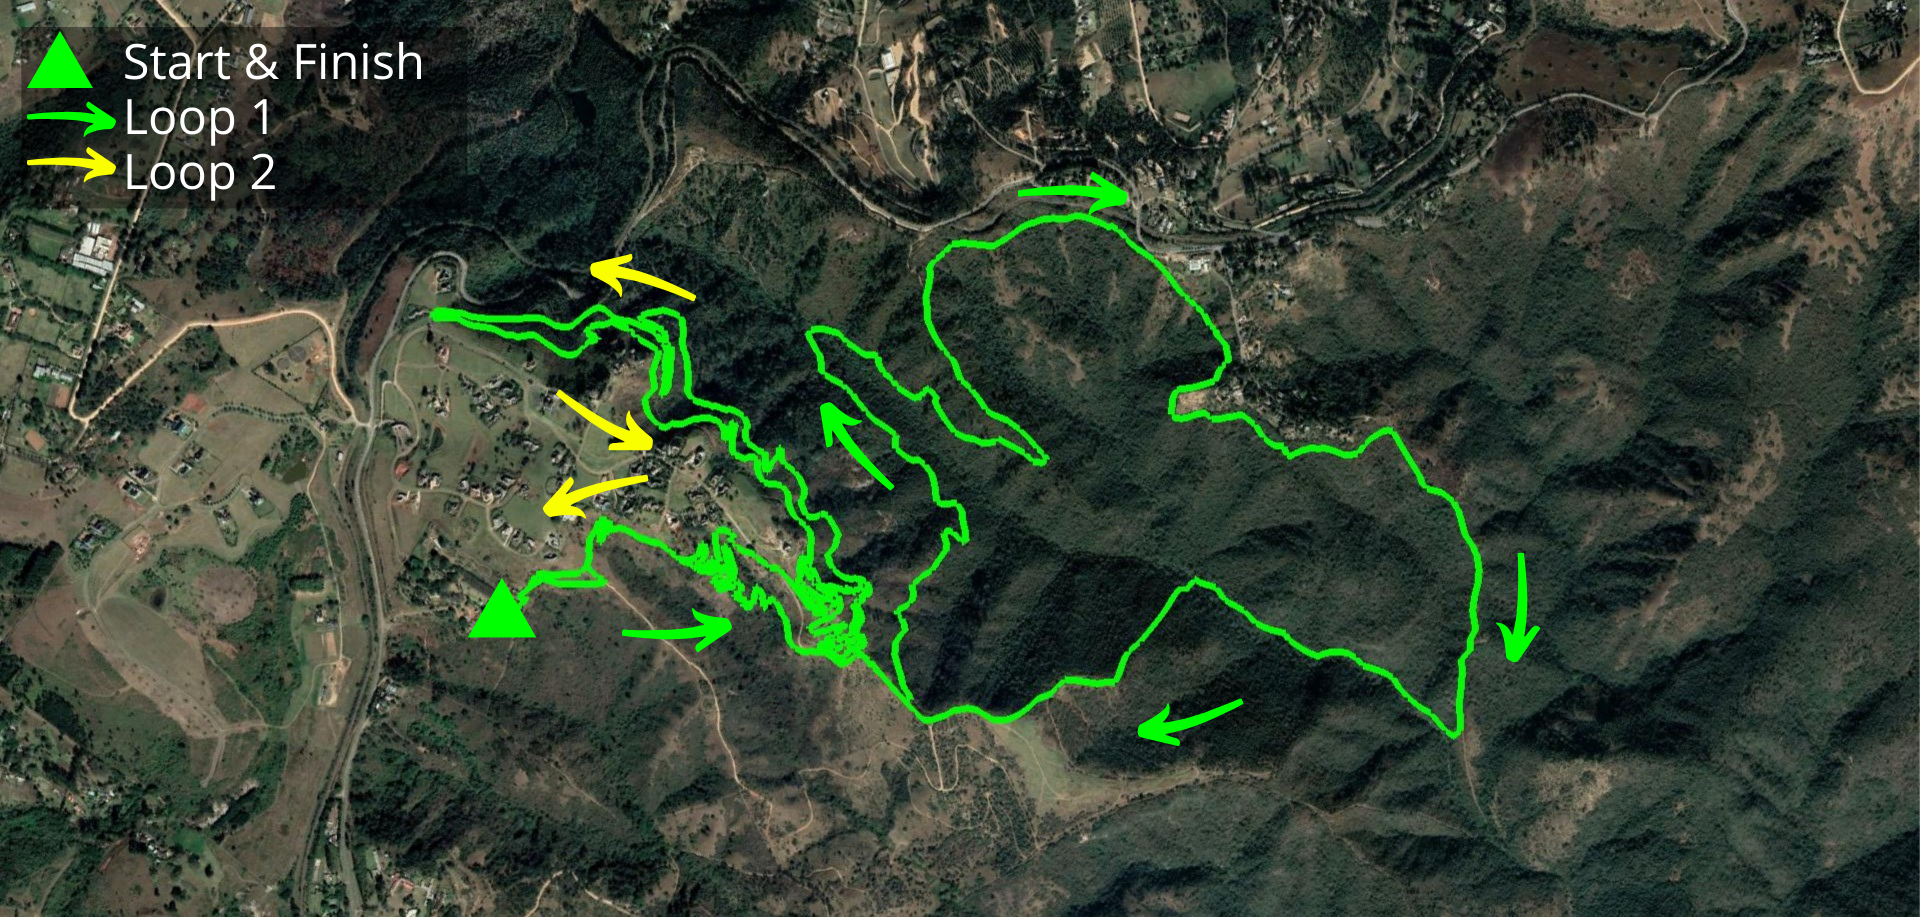 KZNTR PheZulu Trail Run Jun20 - 17 Course Route (Directioned)